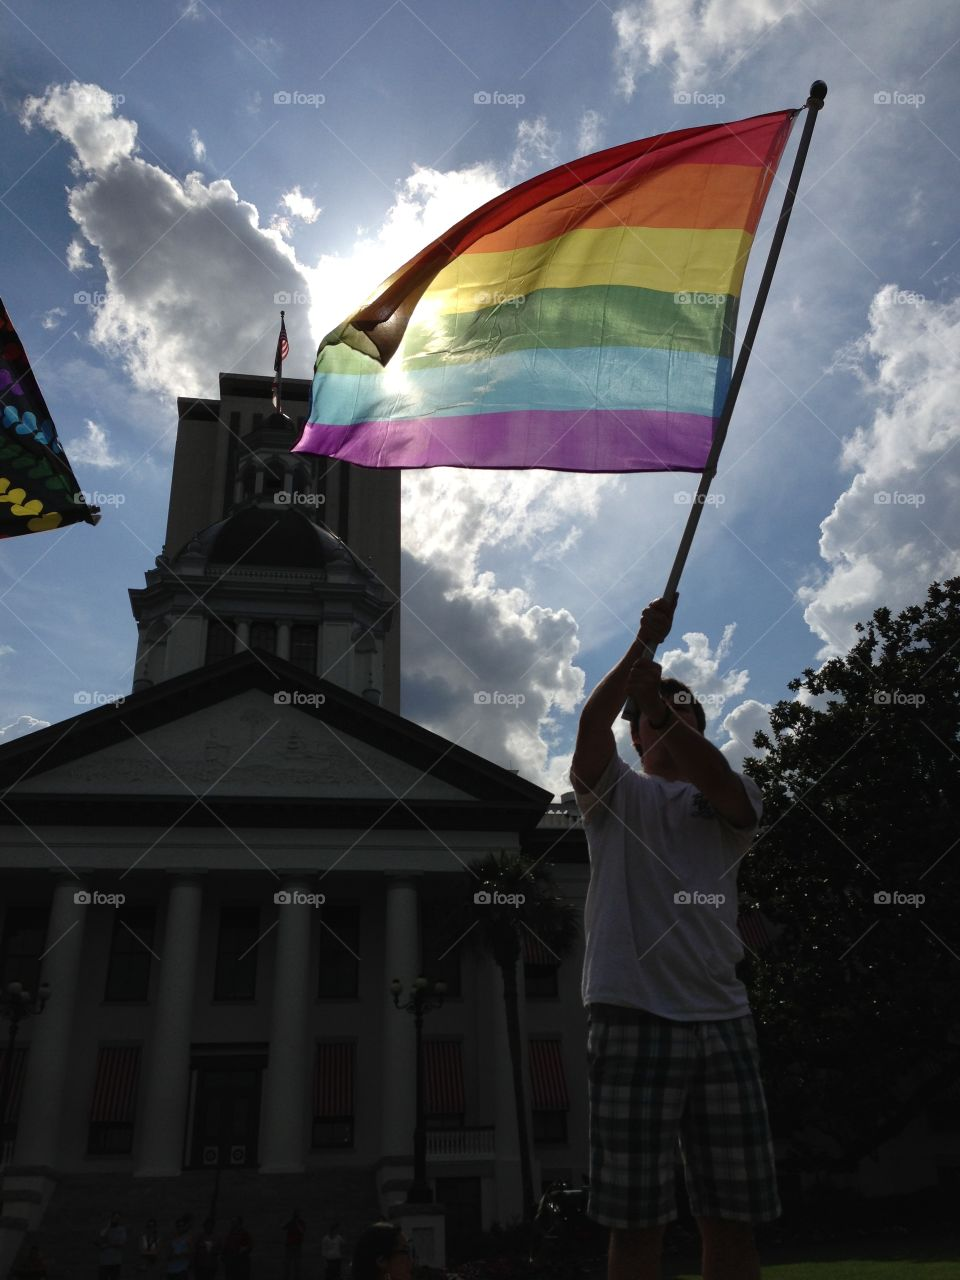 An activist waives a Pride flag in front of the historic Florida Capitol.